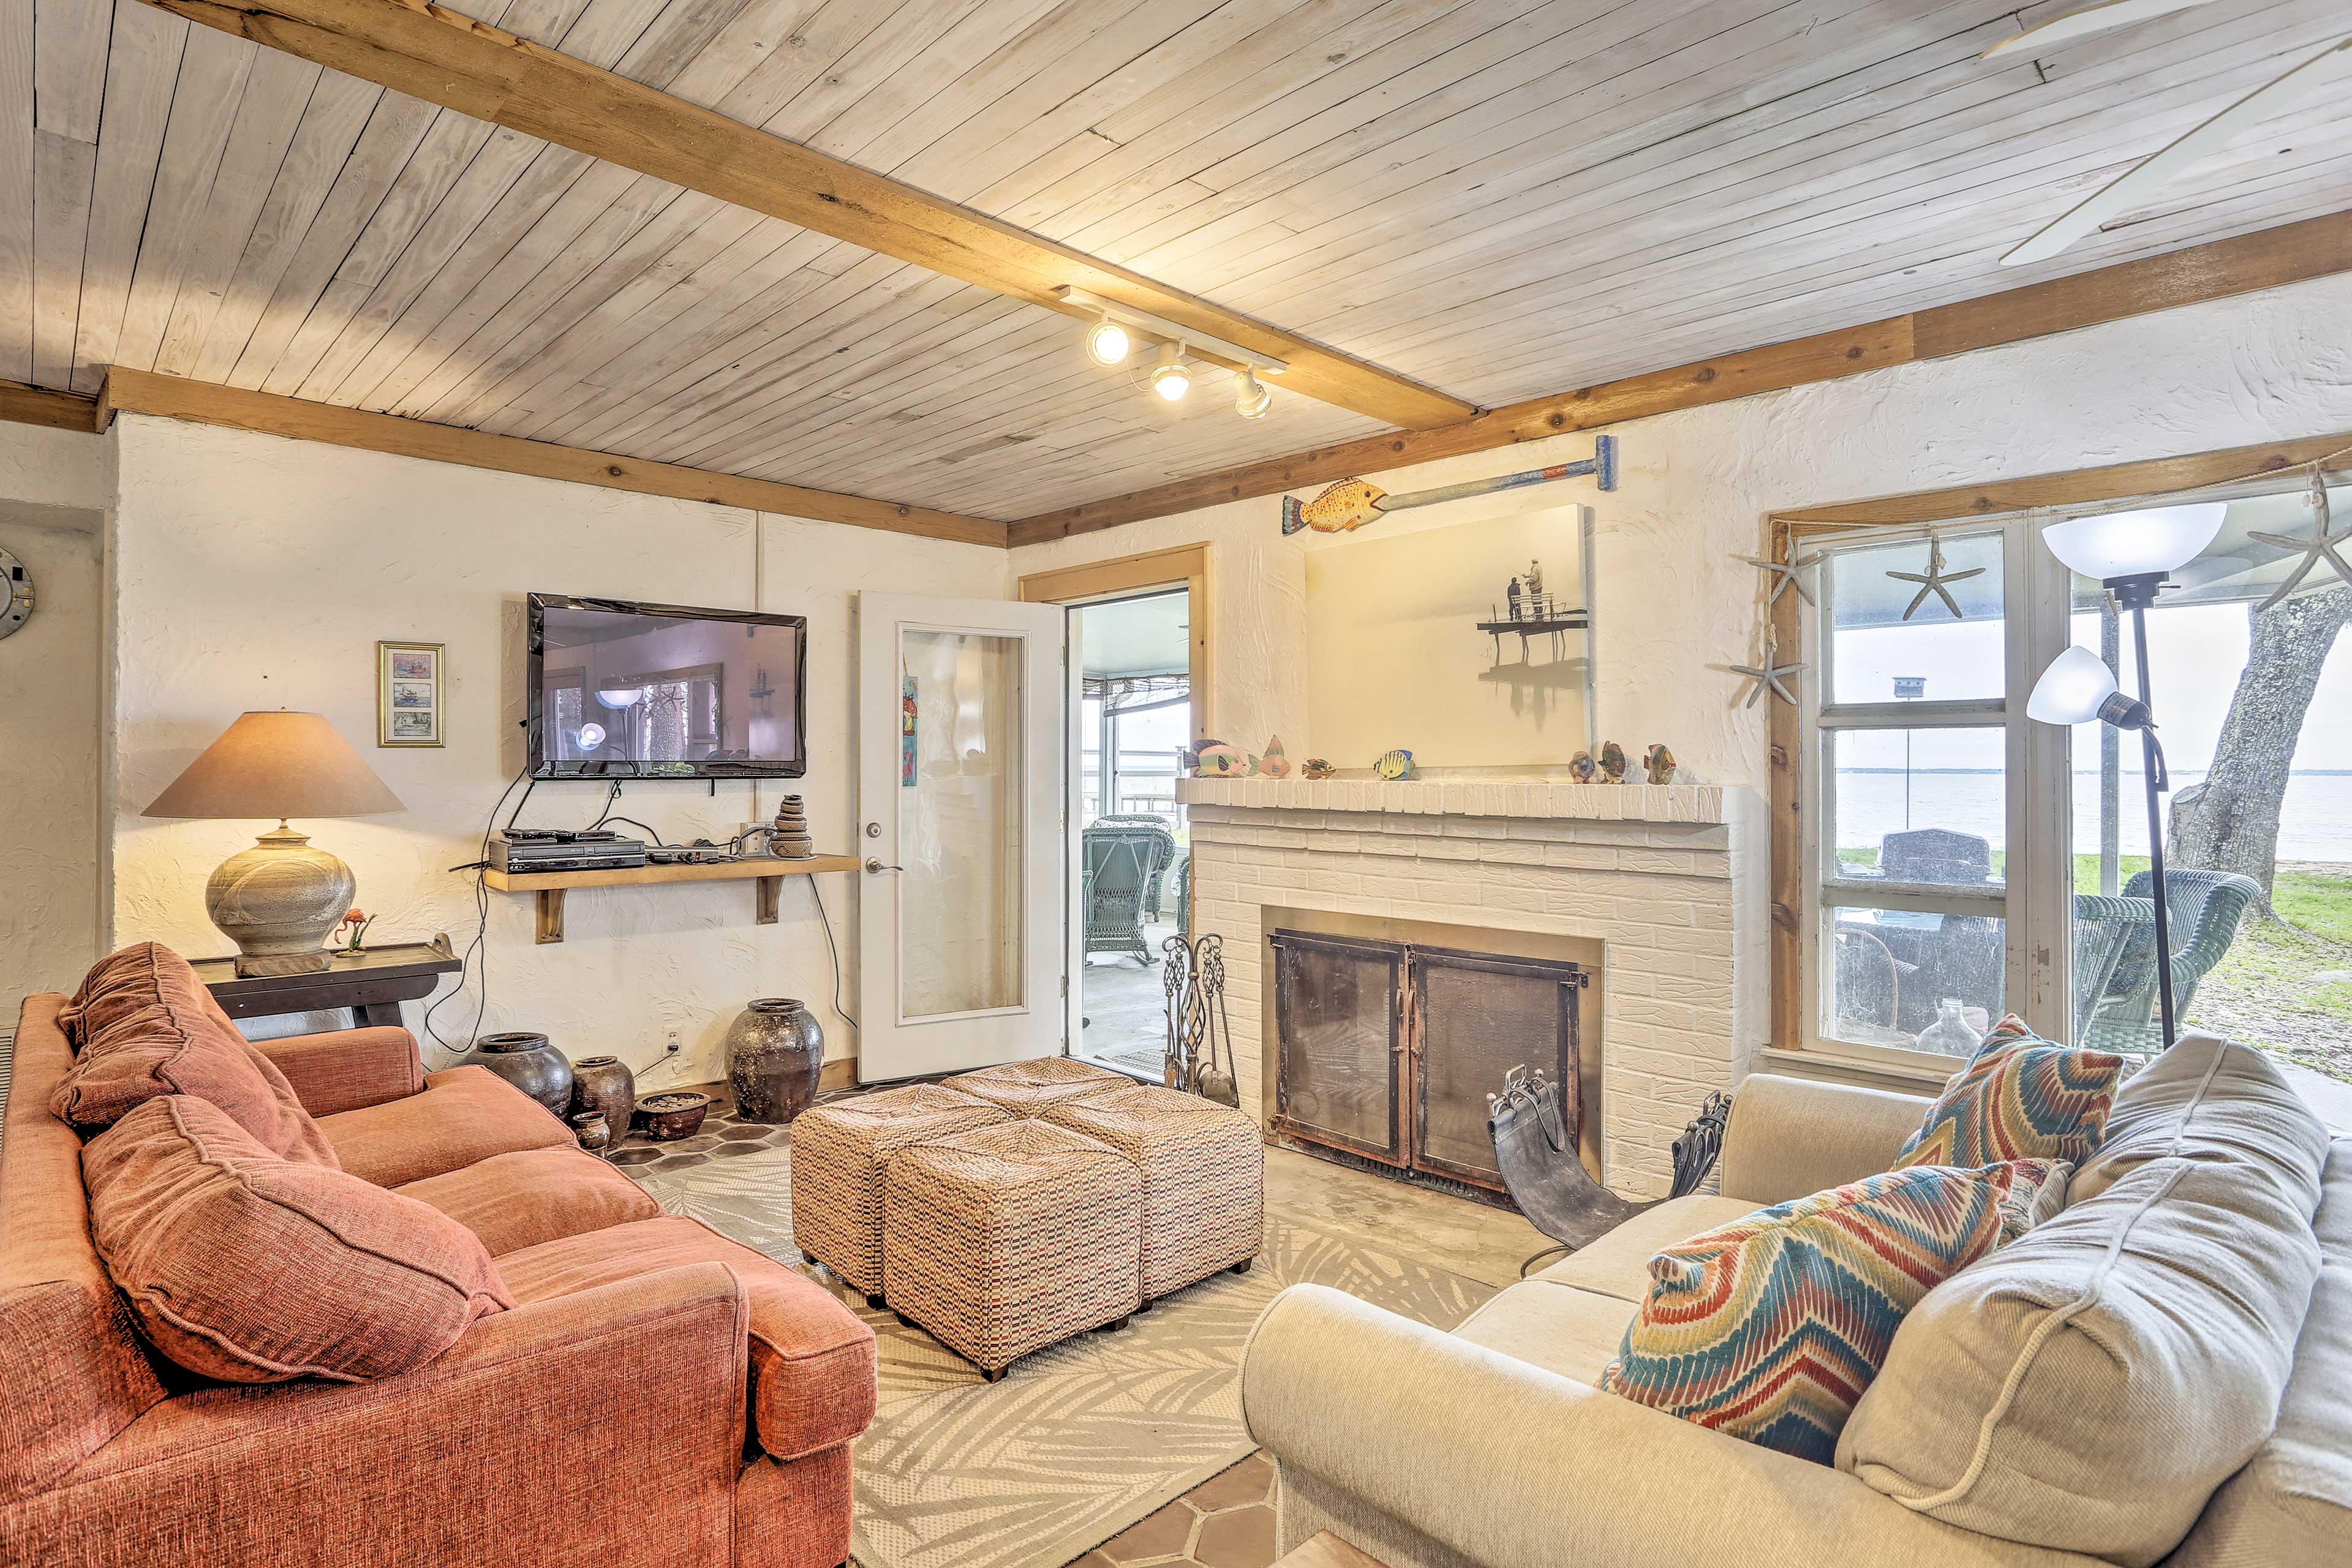 Escape to this 3-bed, 2-bath vacation rental home in Santa Rosa Beach!